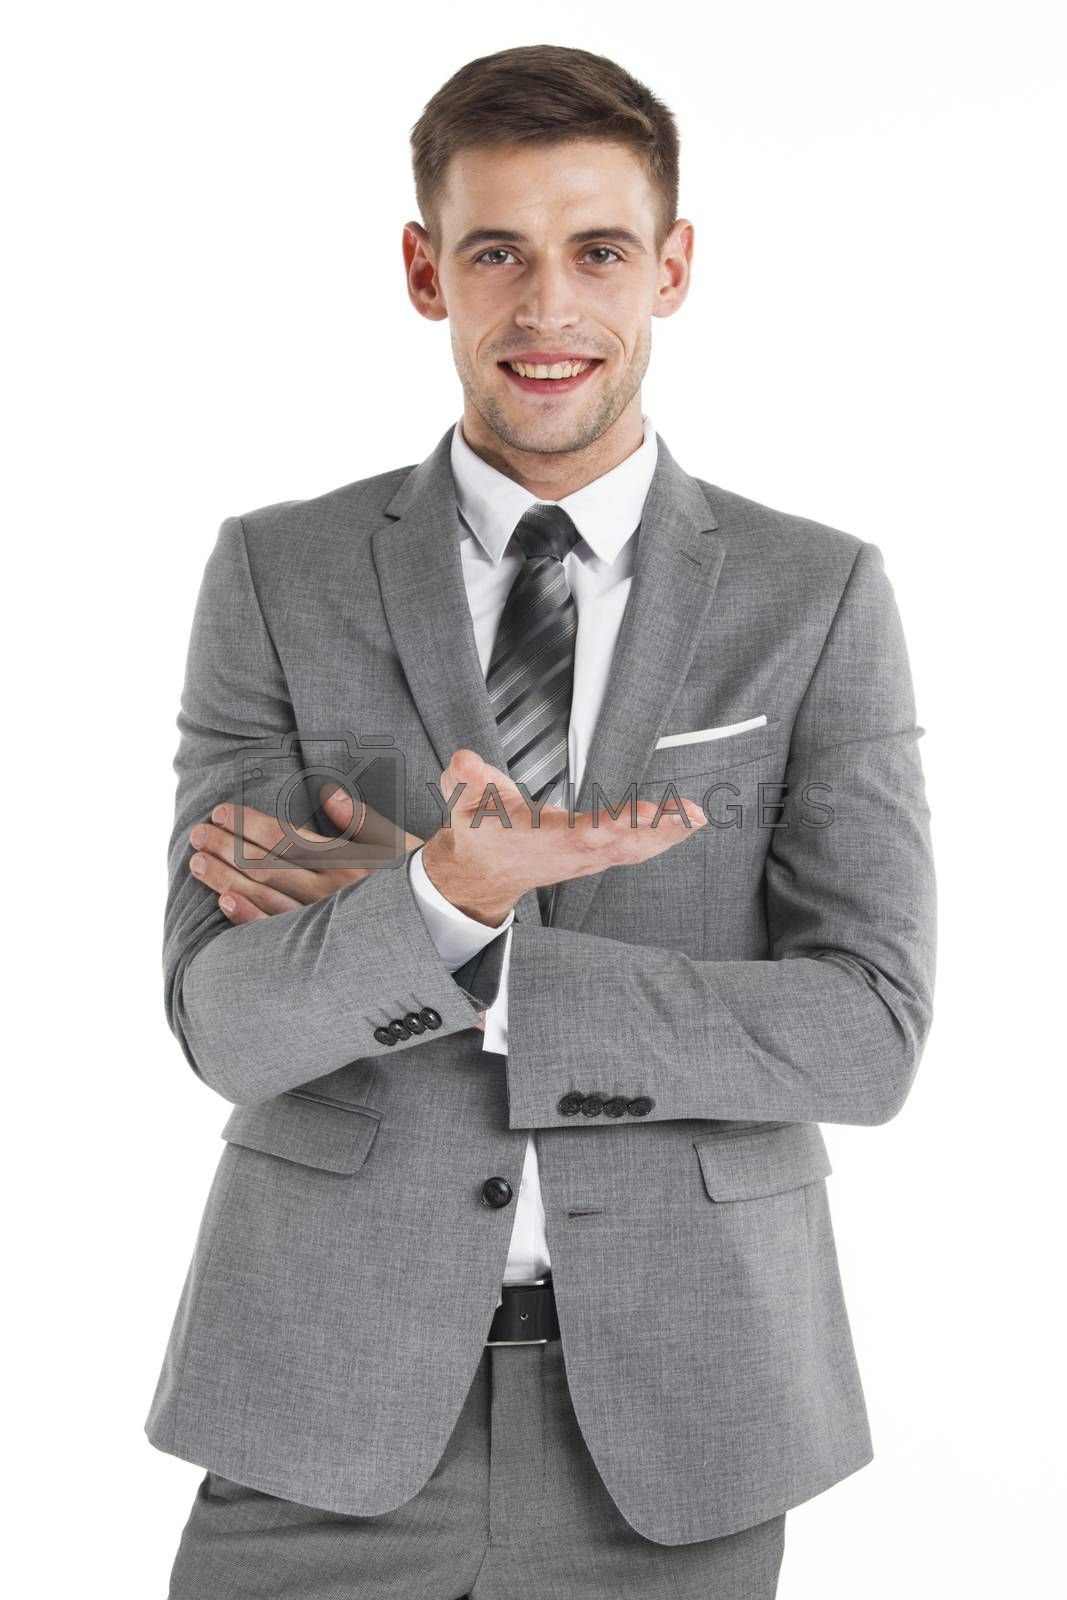 Young business man use hand to hold something isolated on white background